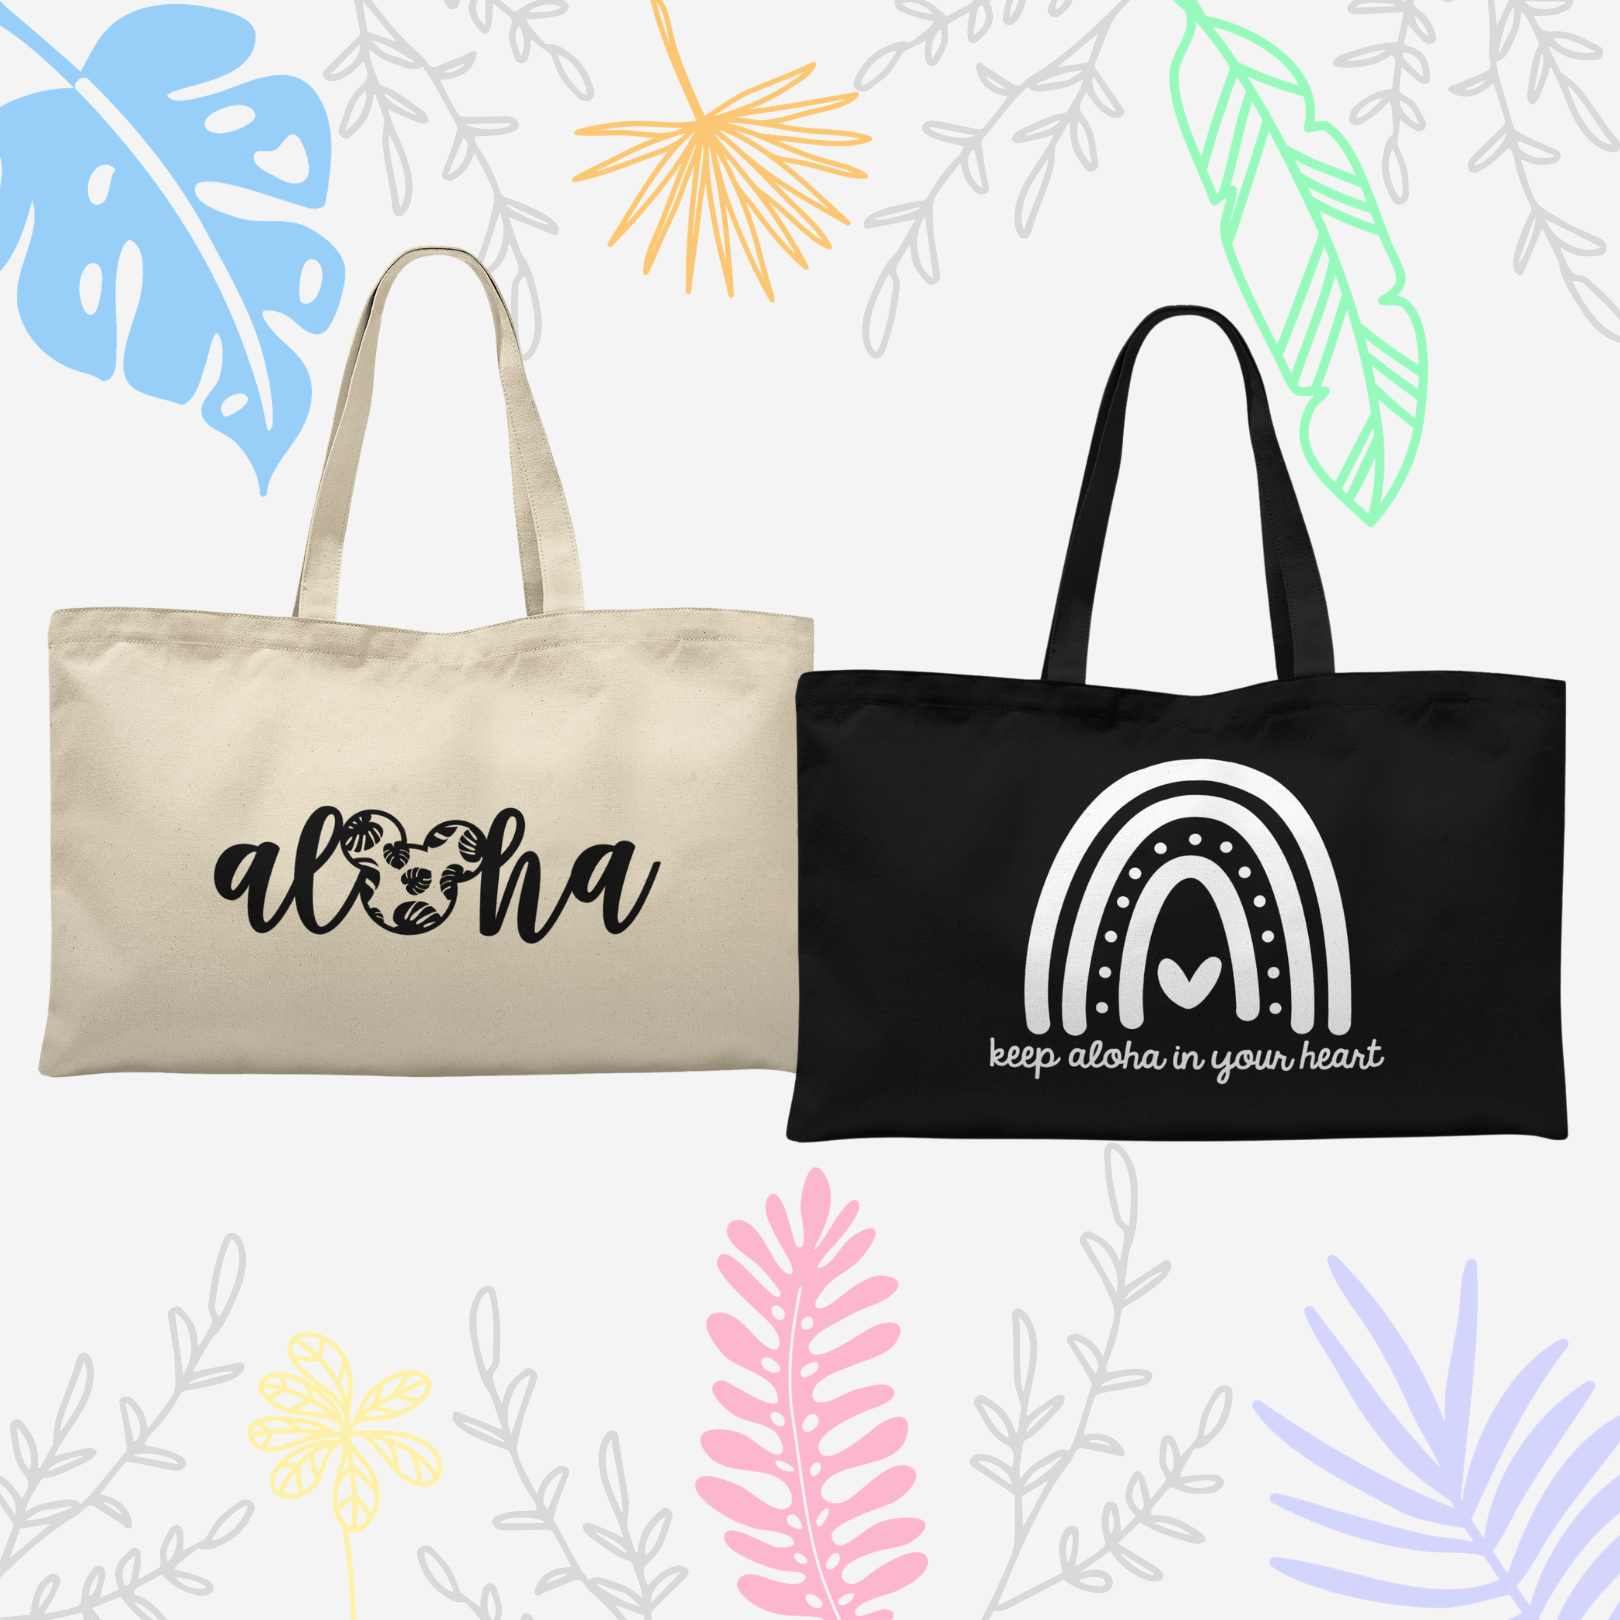 PROMO TOTE SURPRISE BAG!